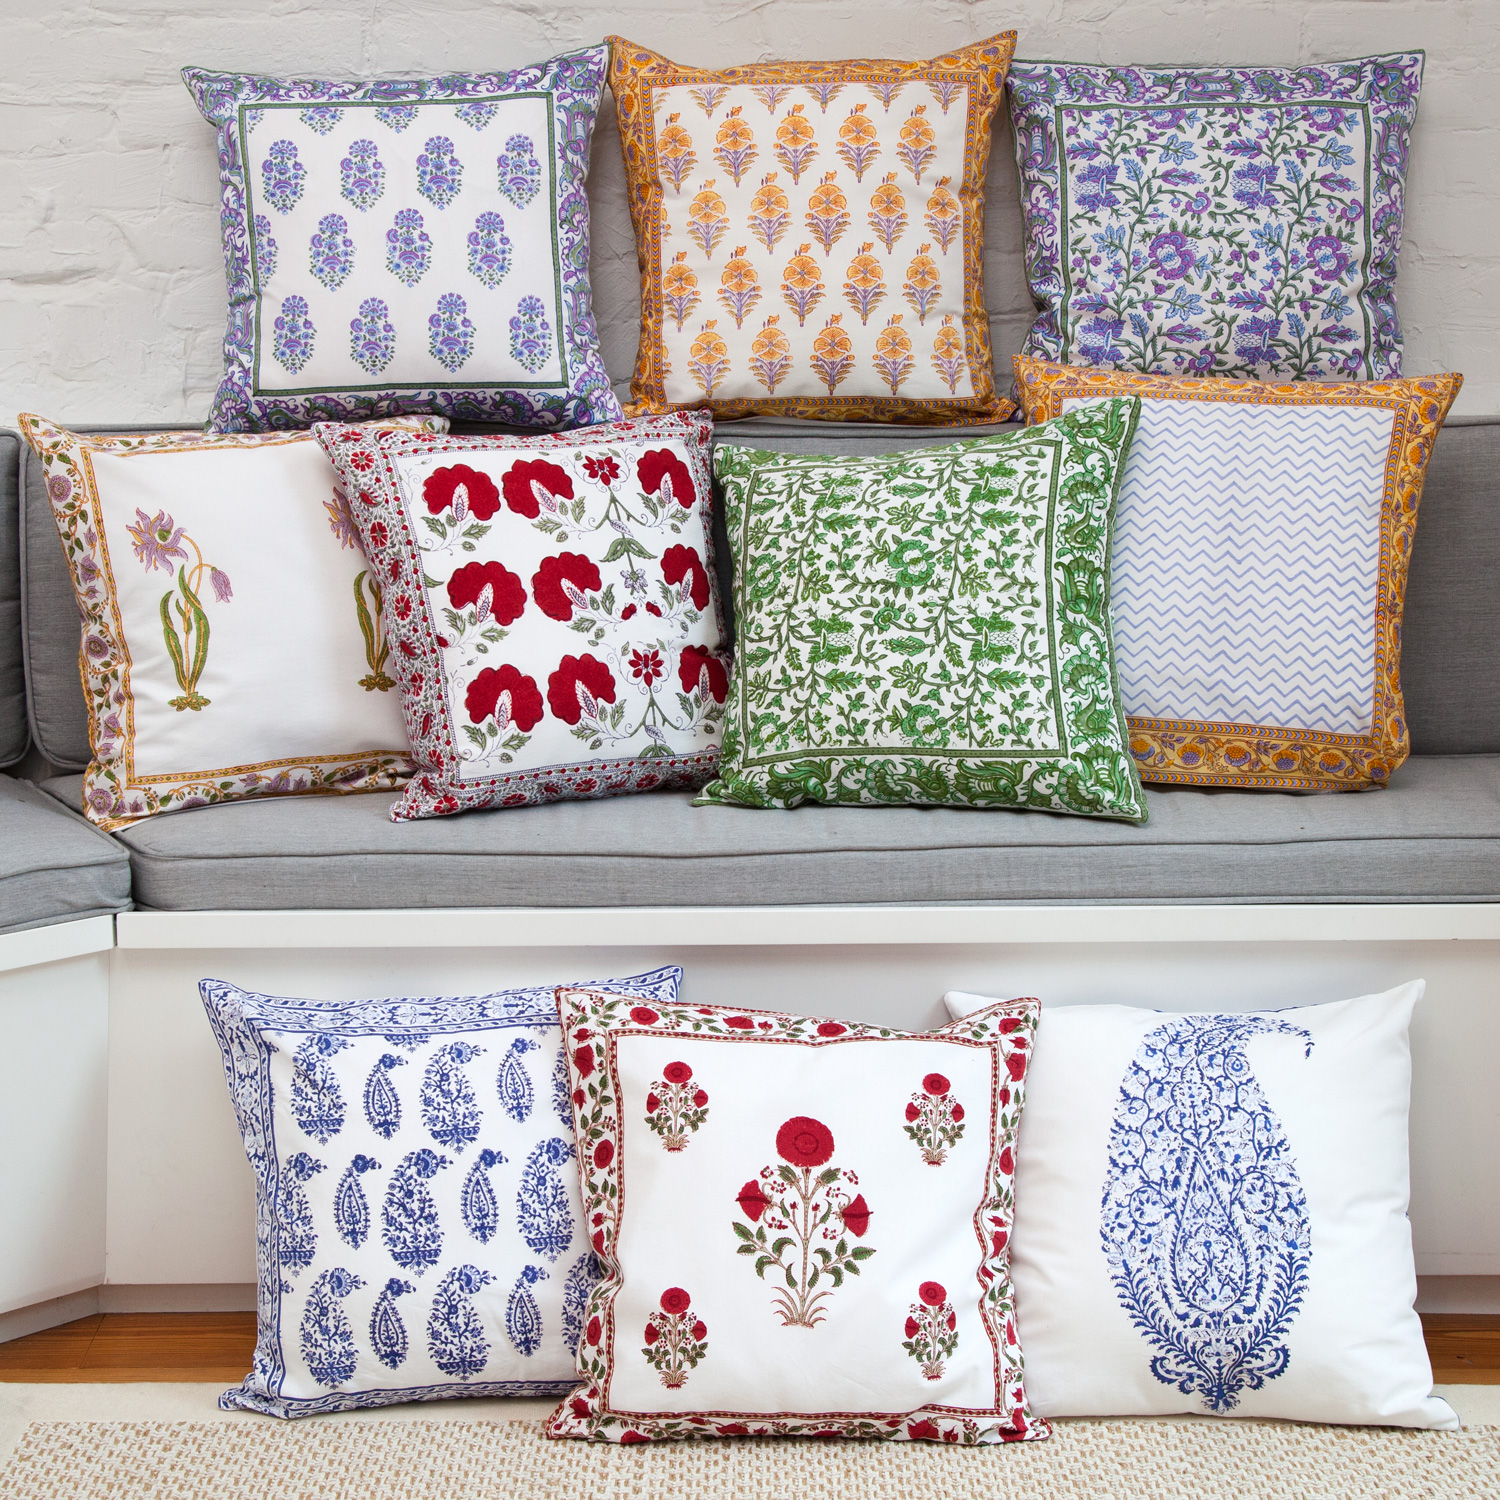 pillow covers for living room modern decor ideas 2017 handmade indian new york marigold view all block printed